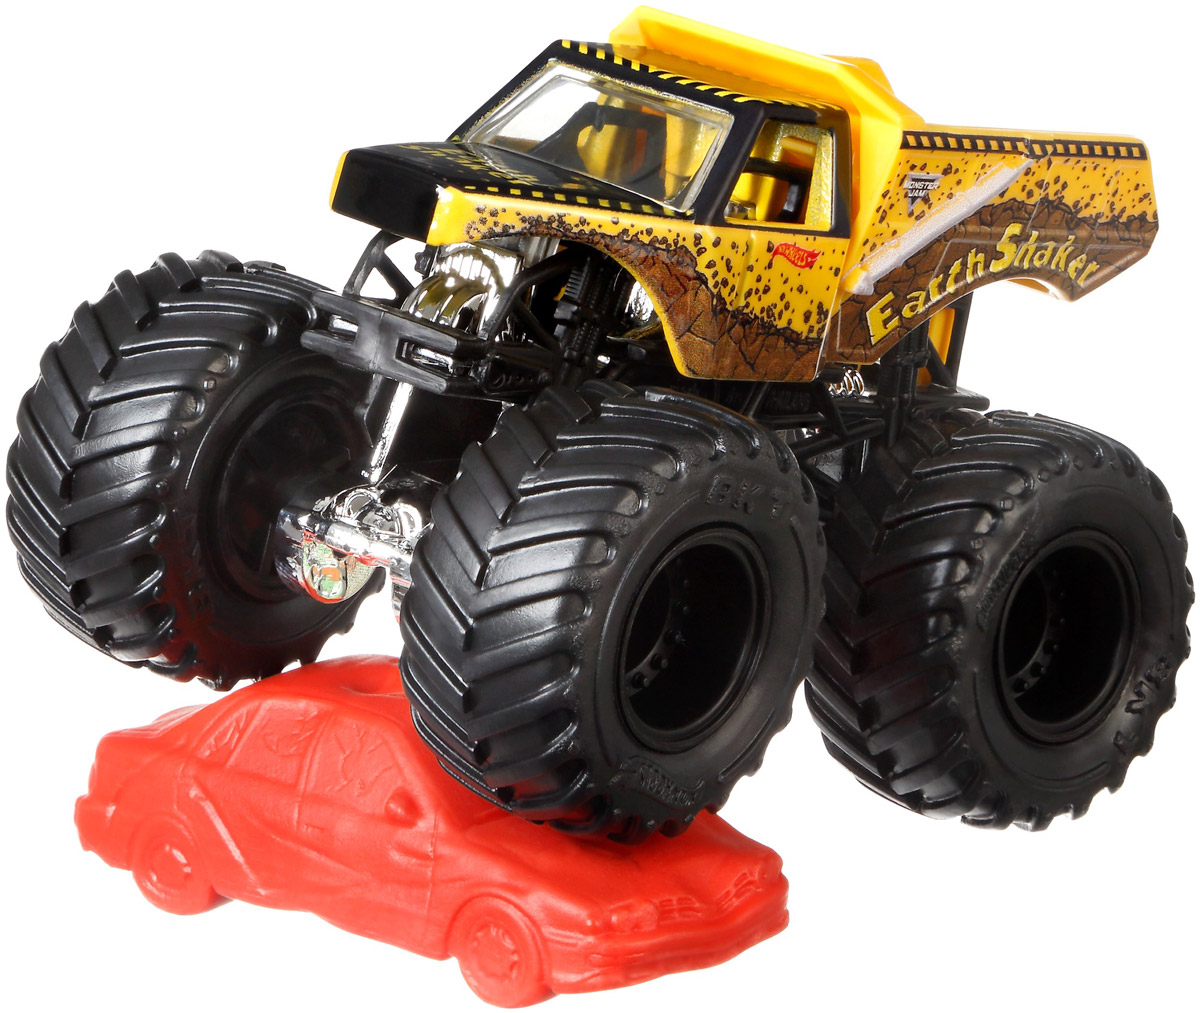 Hot Wheels Monster Jam Трековая машинка Earth Shaker mattel машинка hot wheels monster jam бэтмен